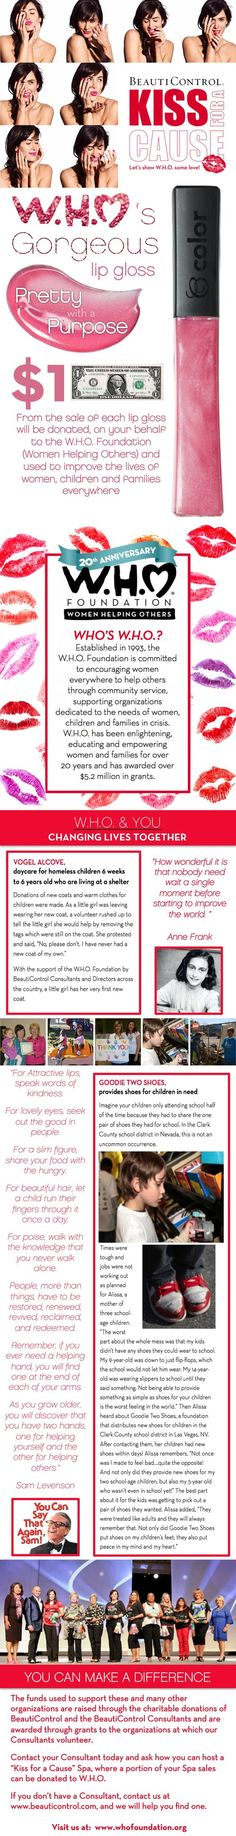 Who is W.H.O.? #BeautiControl W.H.O. (Women Helping Others) Foundation